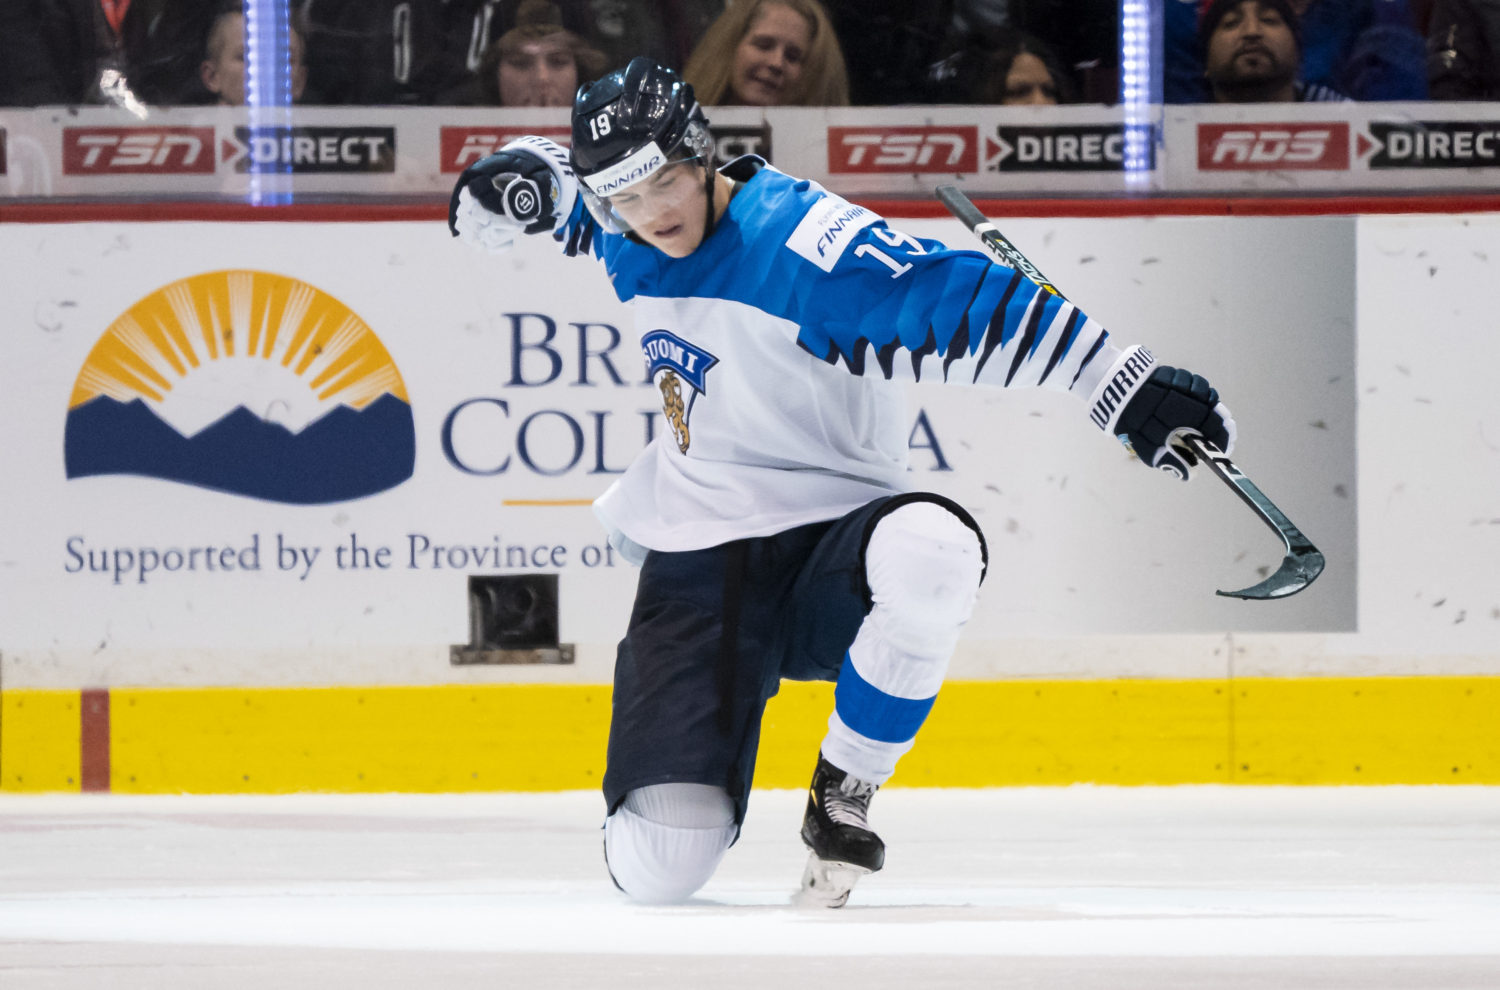 Luukkonen wins world junior gold with Team Finland